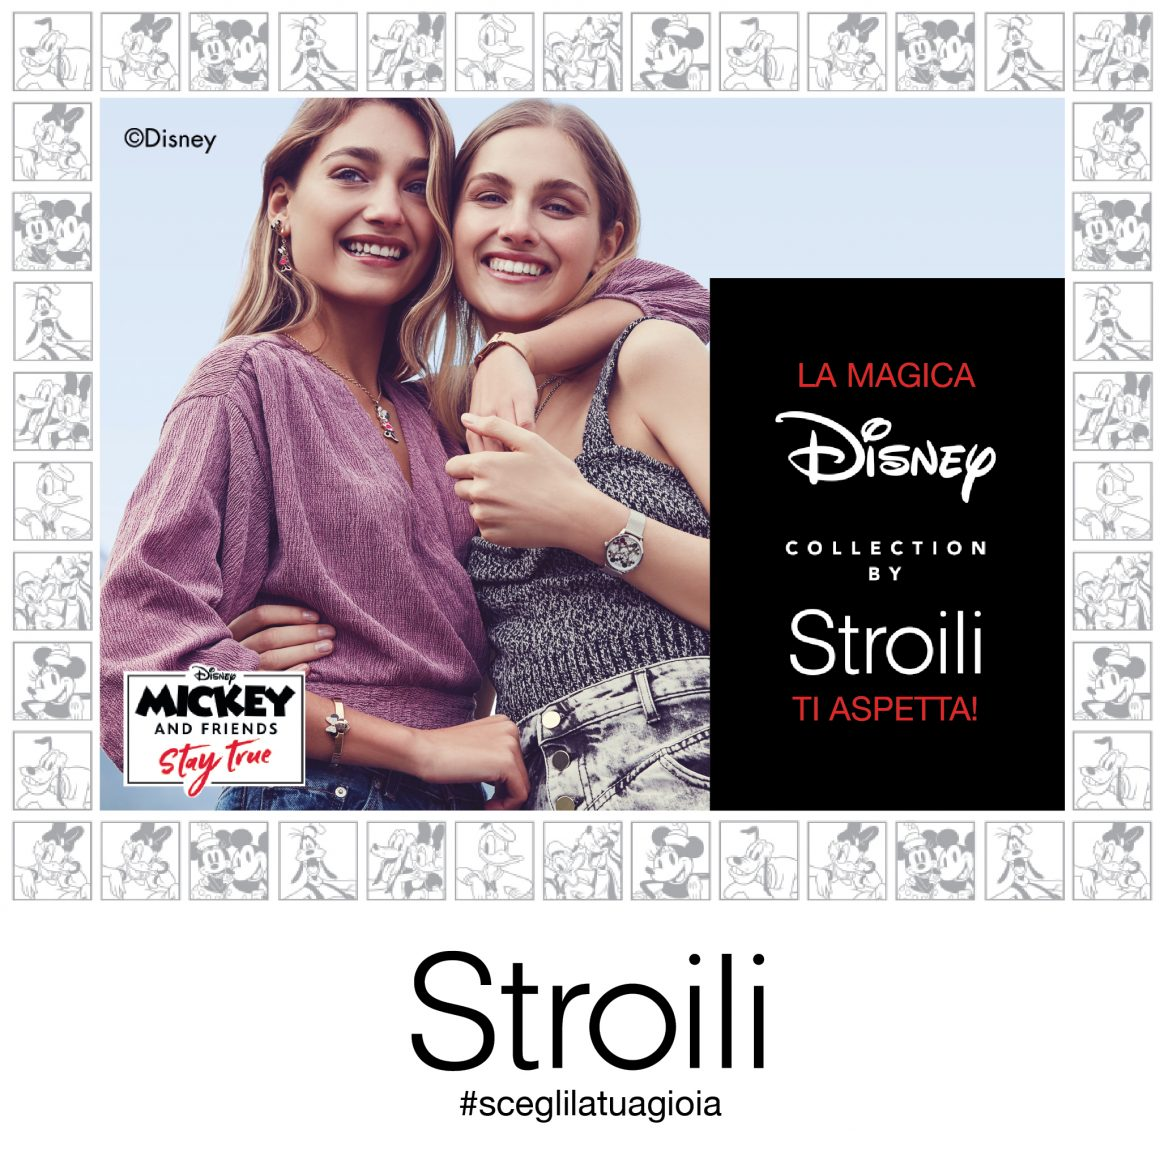 Disney Collection by Stroili